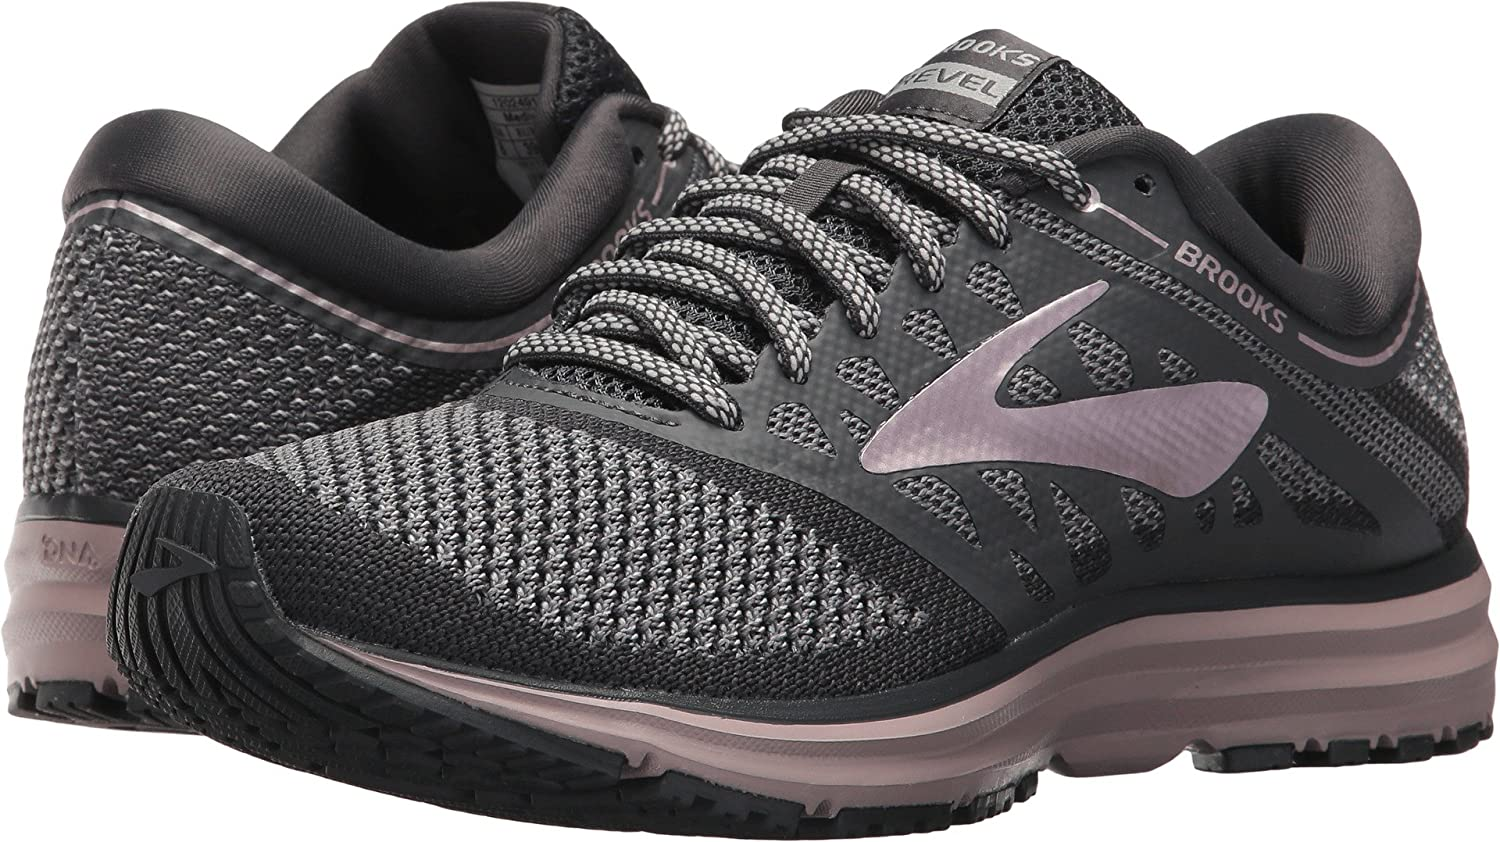 Brooks Womens Revel B06XXH63QK 9 B(M) US|Grey/Ebony/Rose Gold